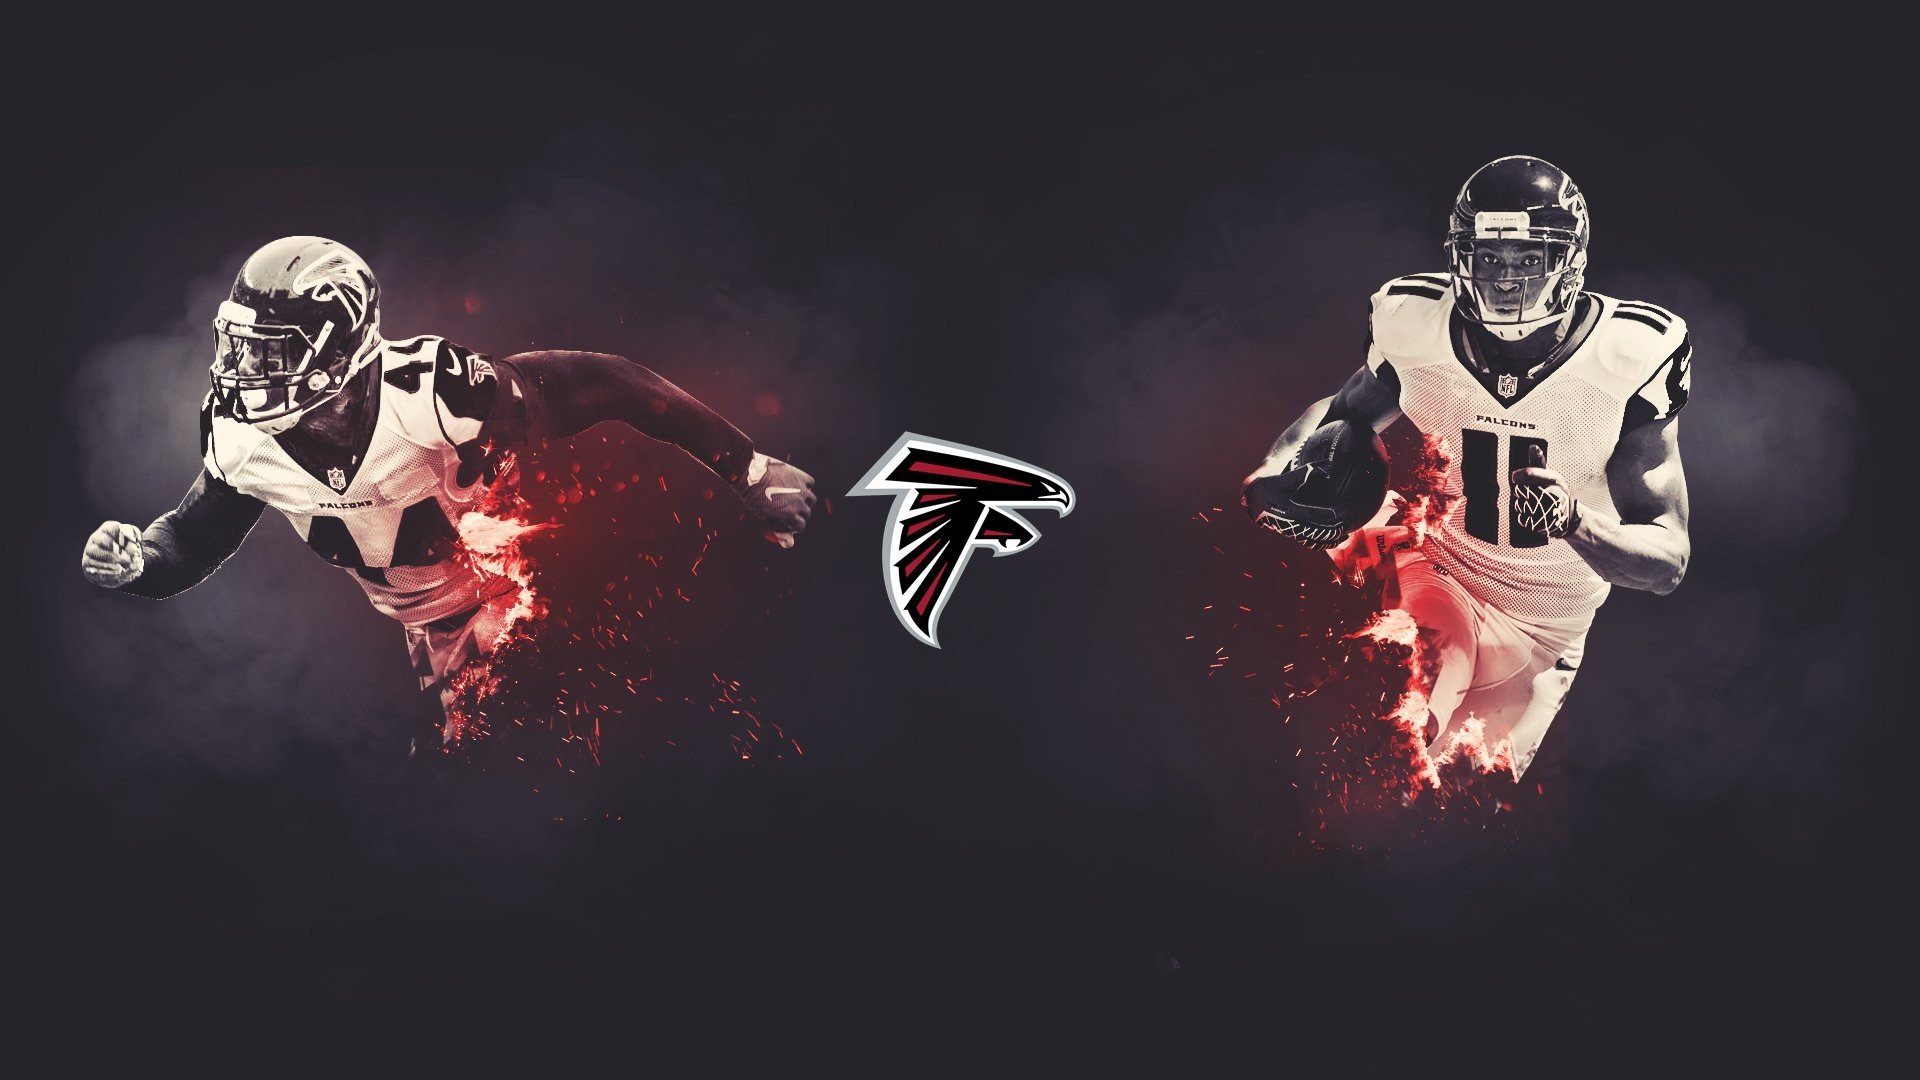 1920x1080 Atlanta Falcons Wallpaper 10 - 1920 X 1080